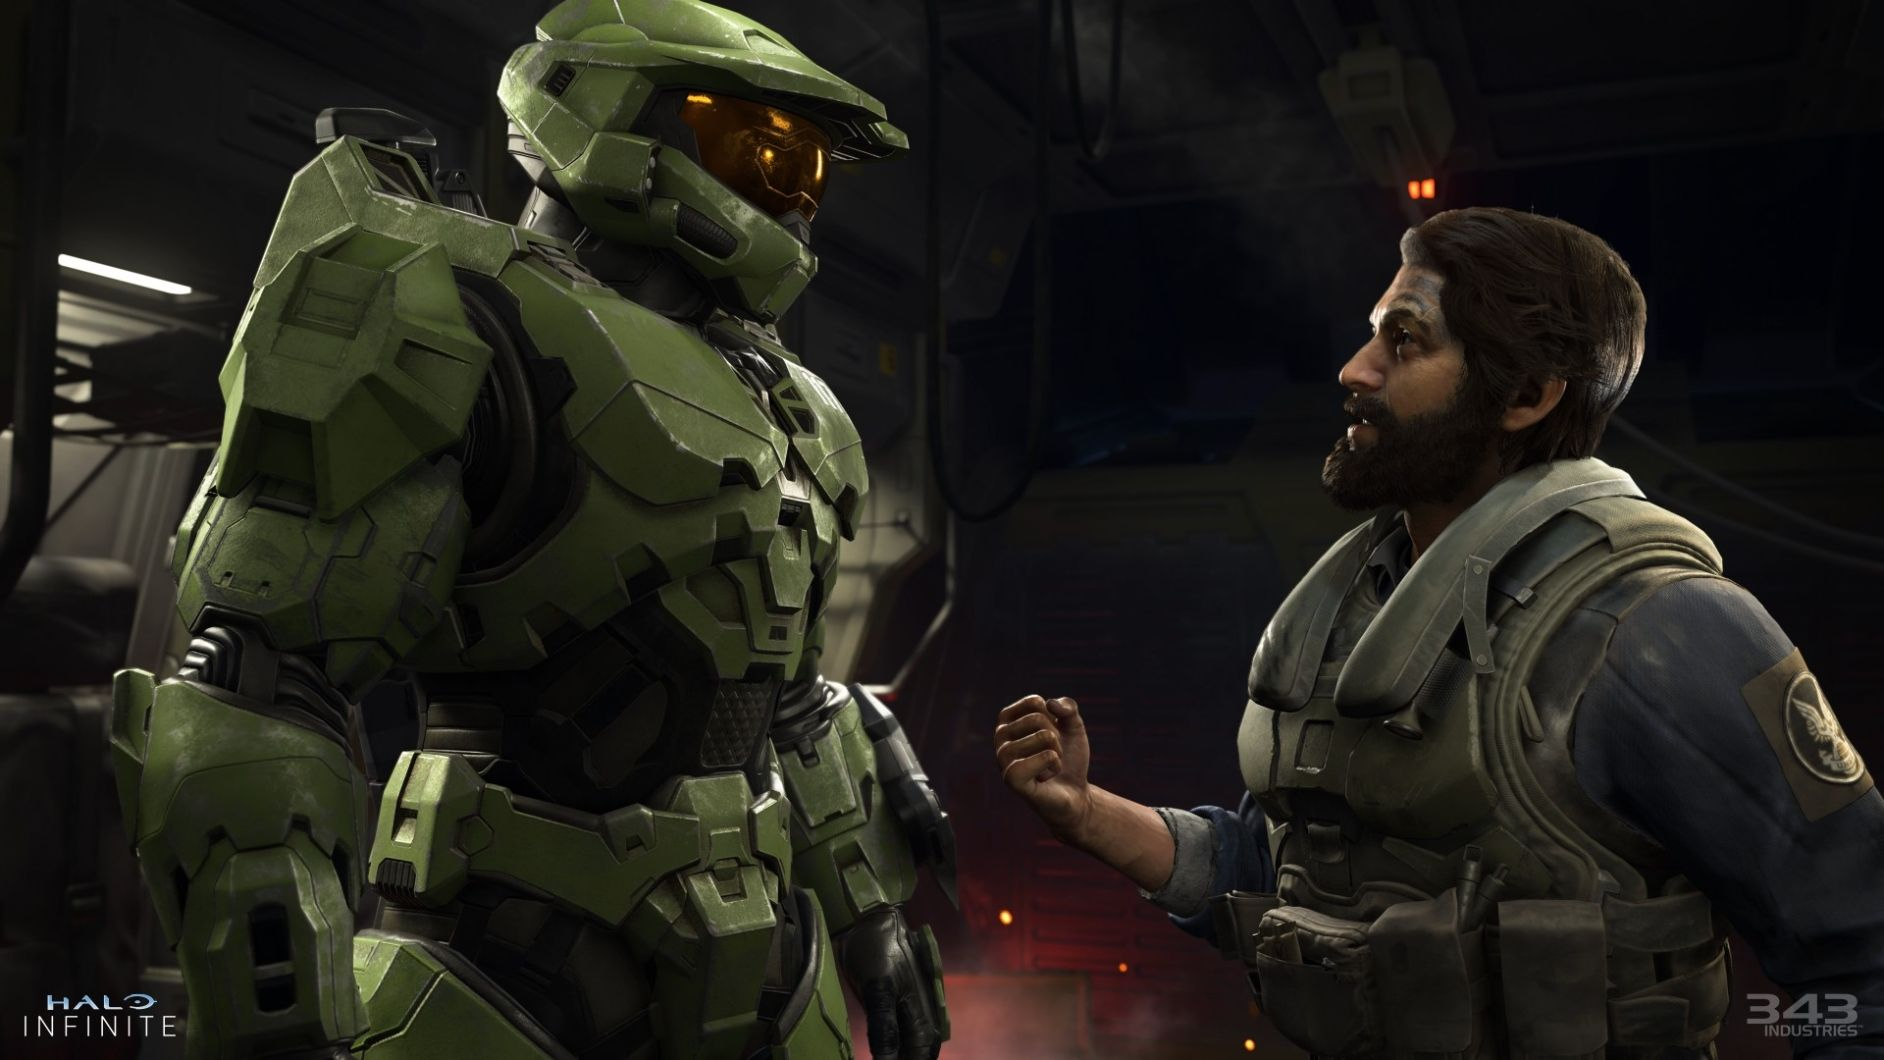 Halo Infinite: A preview of this autumn's perhaps hottest game release